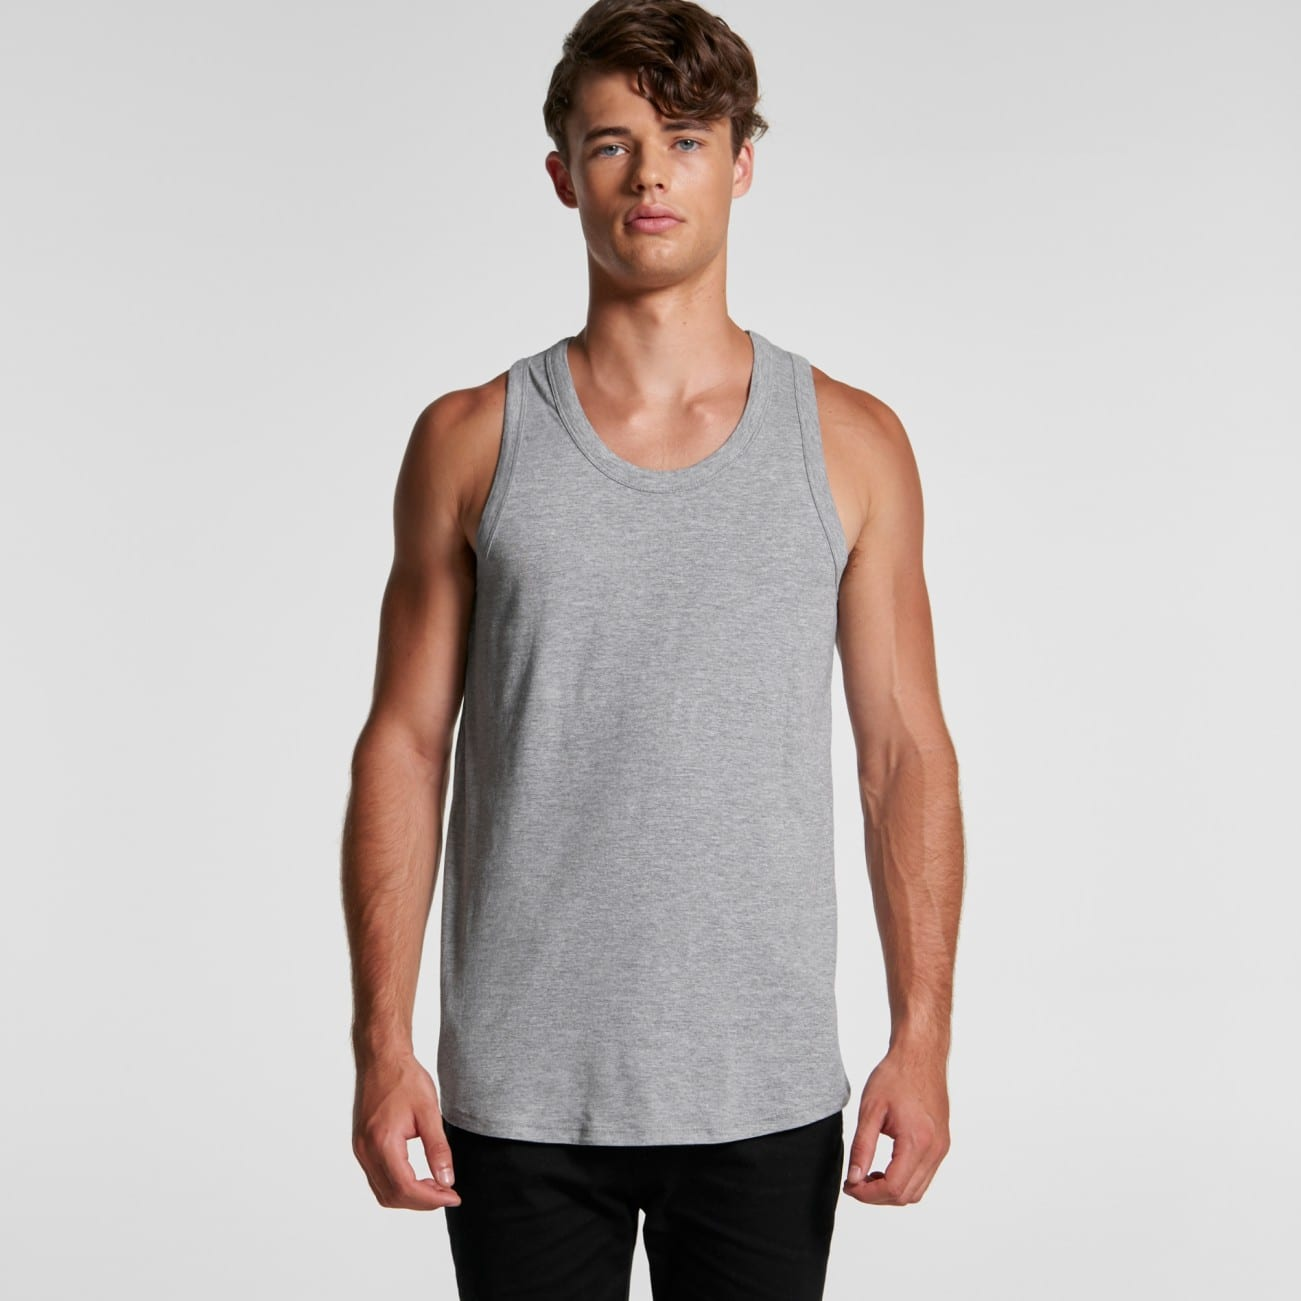 AS 5004 Authentic Singlet